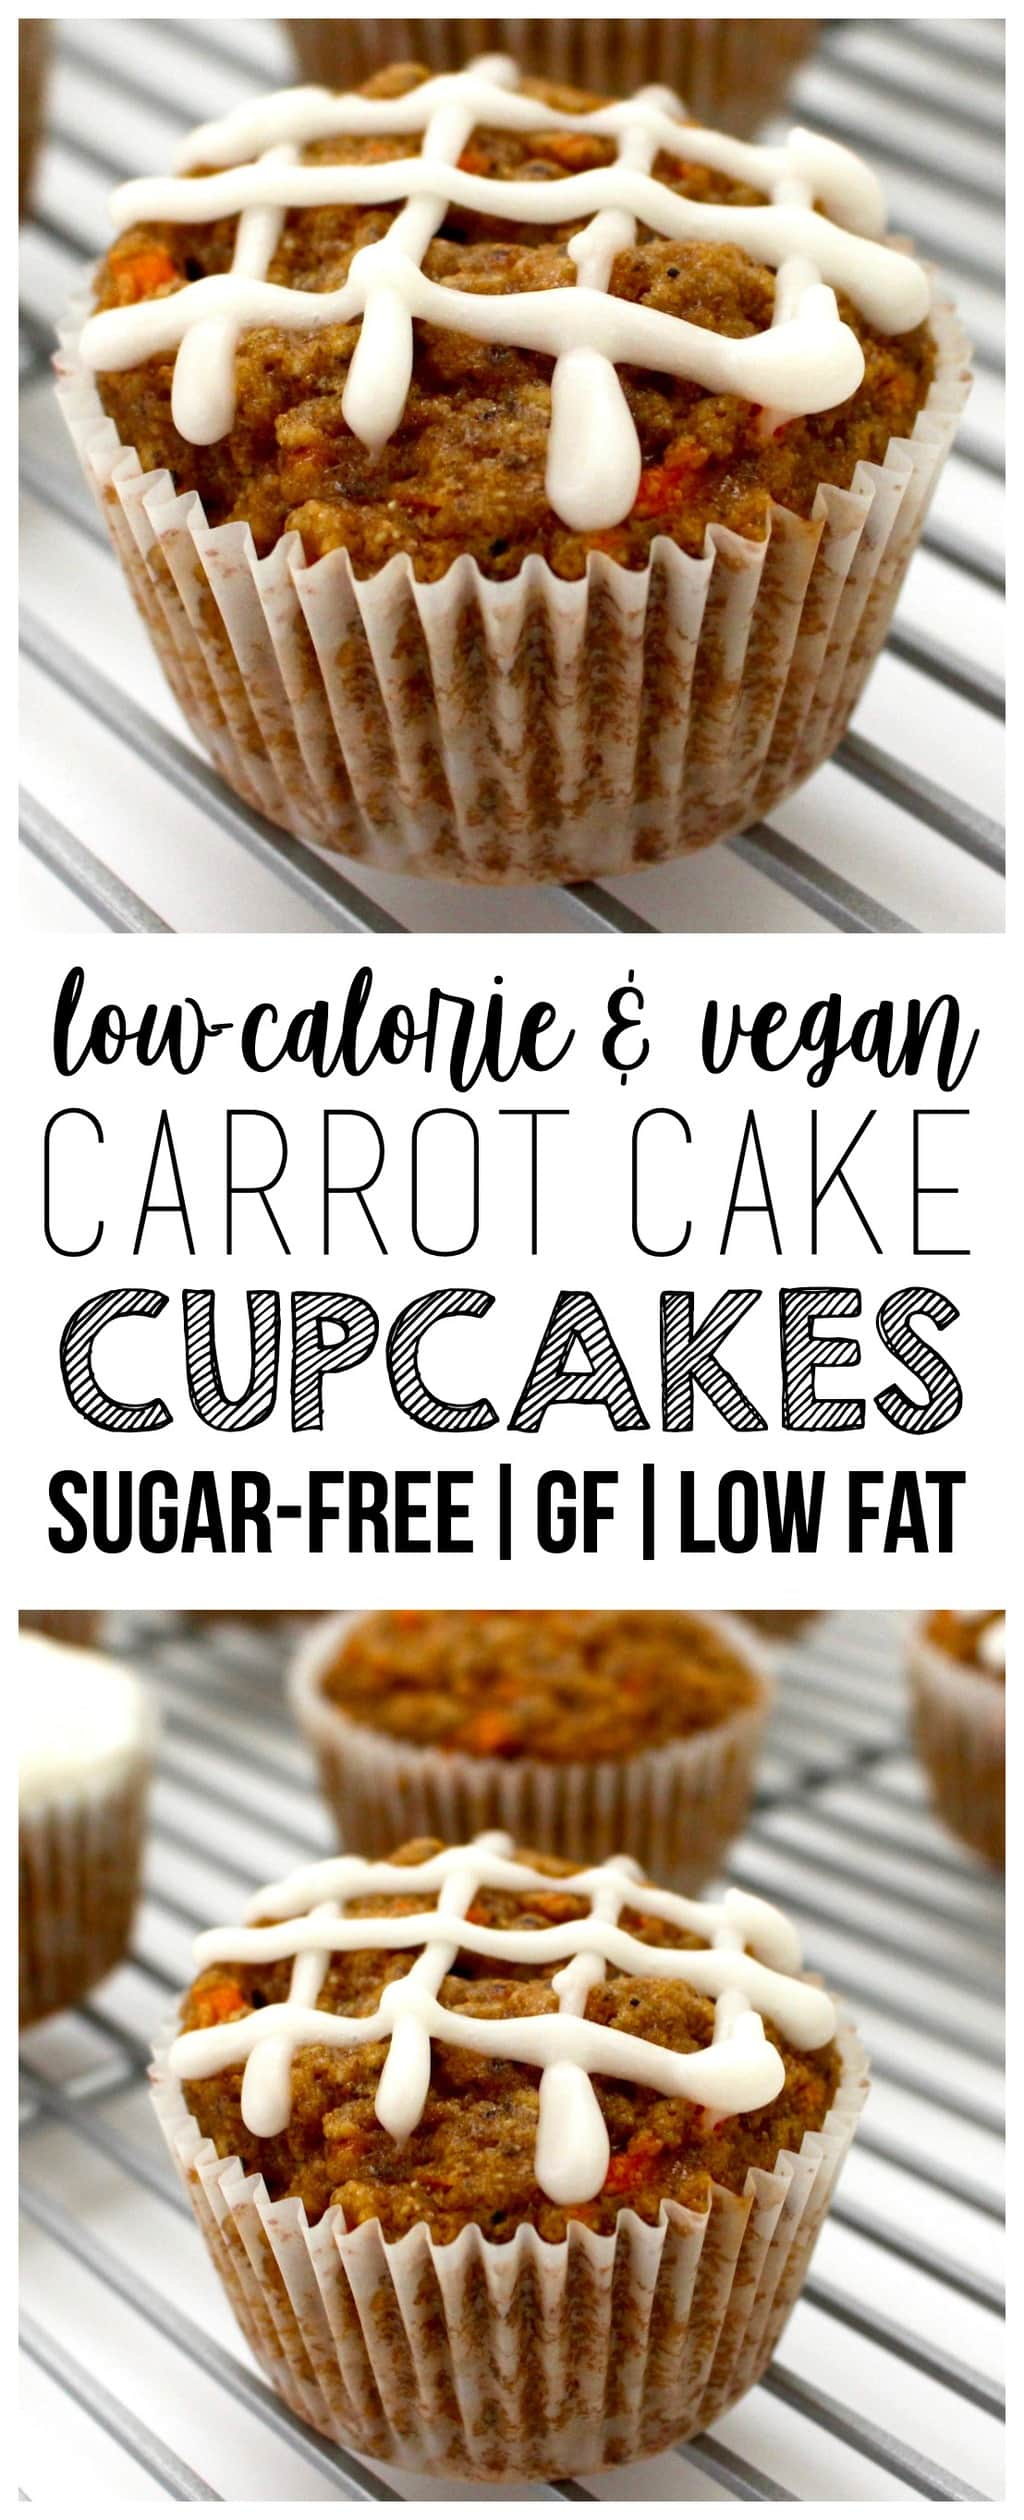 These Vegan Carrot Cake Cupcakes are AMAZING and so easy to make! They're also low-fat, oil-free, sugar-free, gluten-free optional, dairy-free & low-calorie - only 79 calories each!